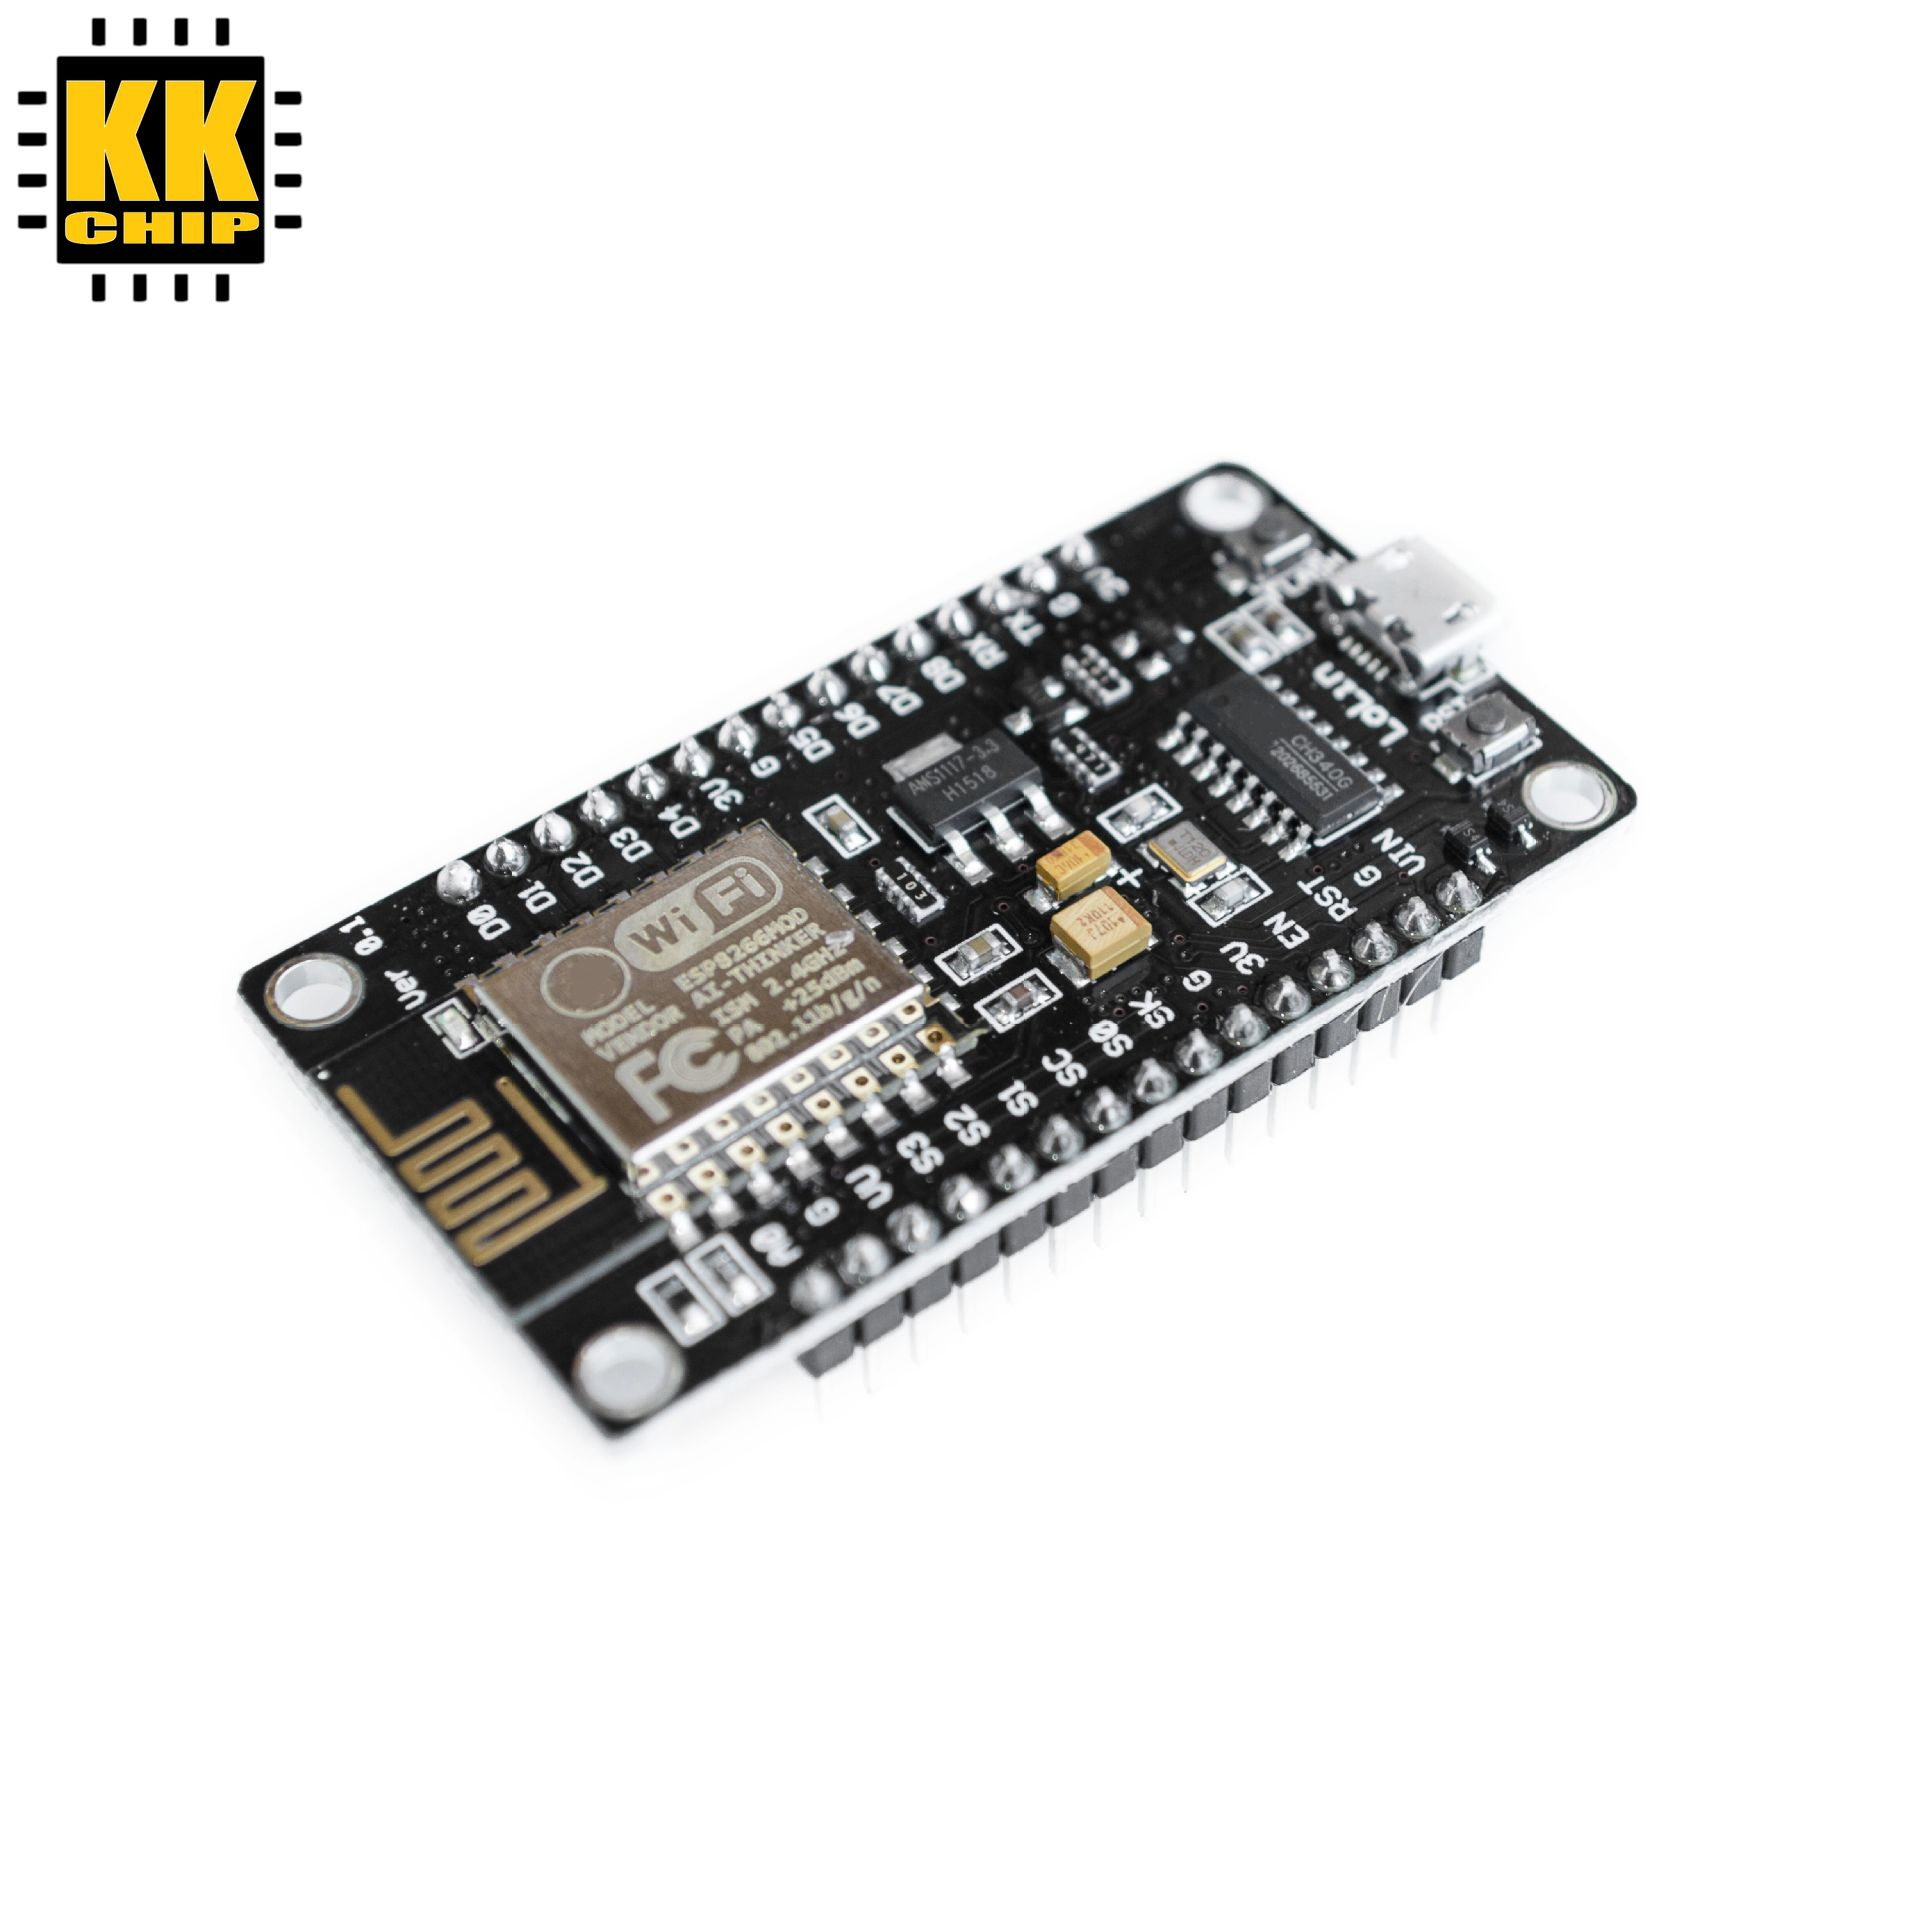 Wireless module NodeMcu v3 CH340 Lua WIFI Internet of Things development board ESP8266 with pcb Antenna and usb port for Arduino